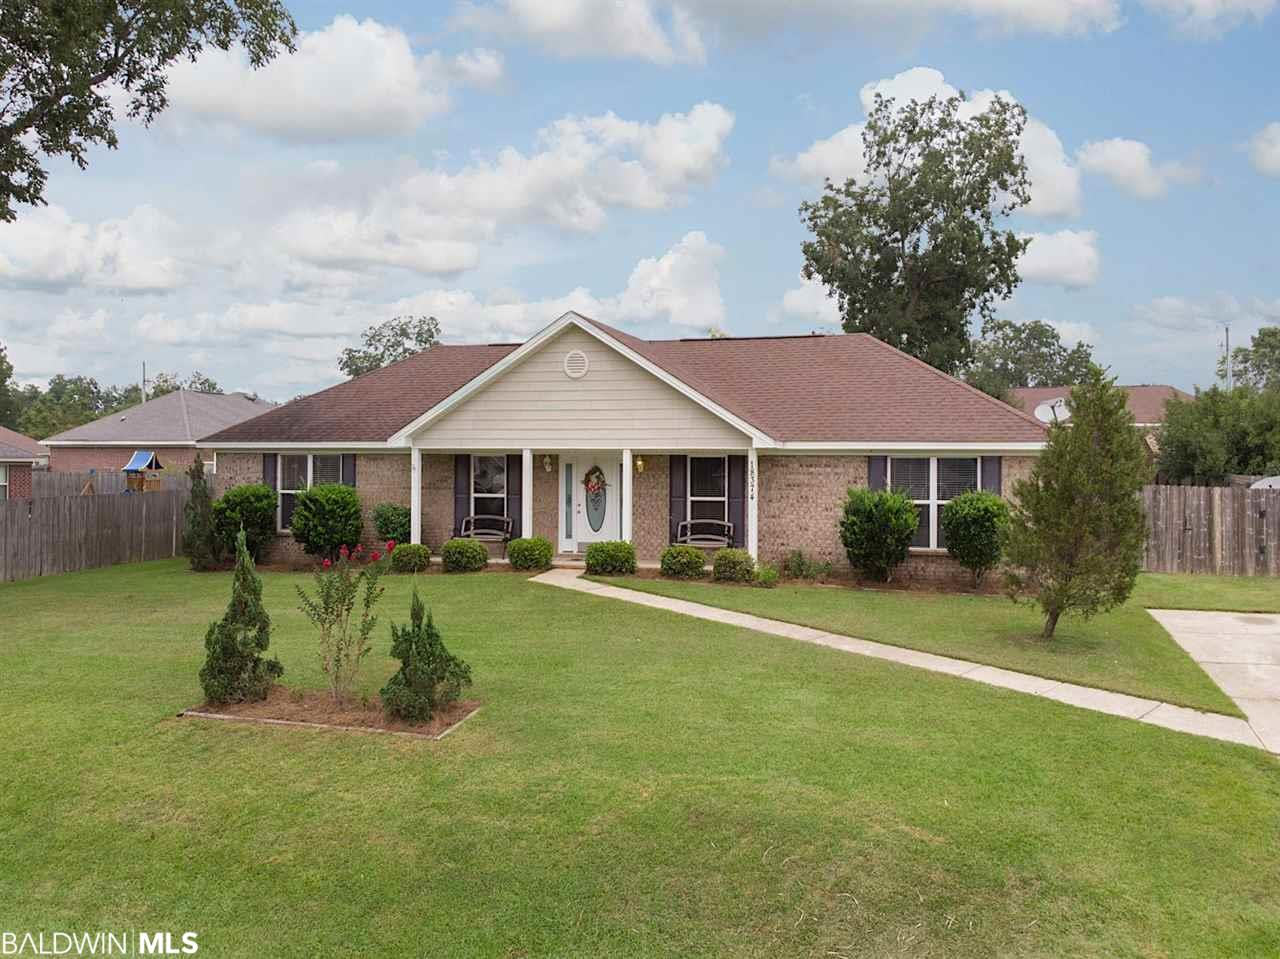 18374 Outlook Dr, Loxley, AL 36551